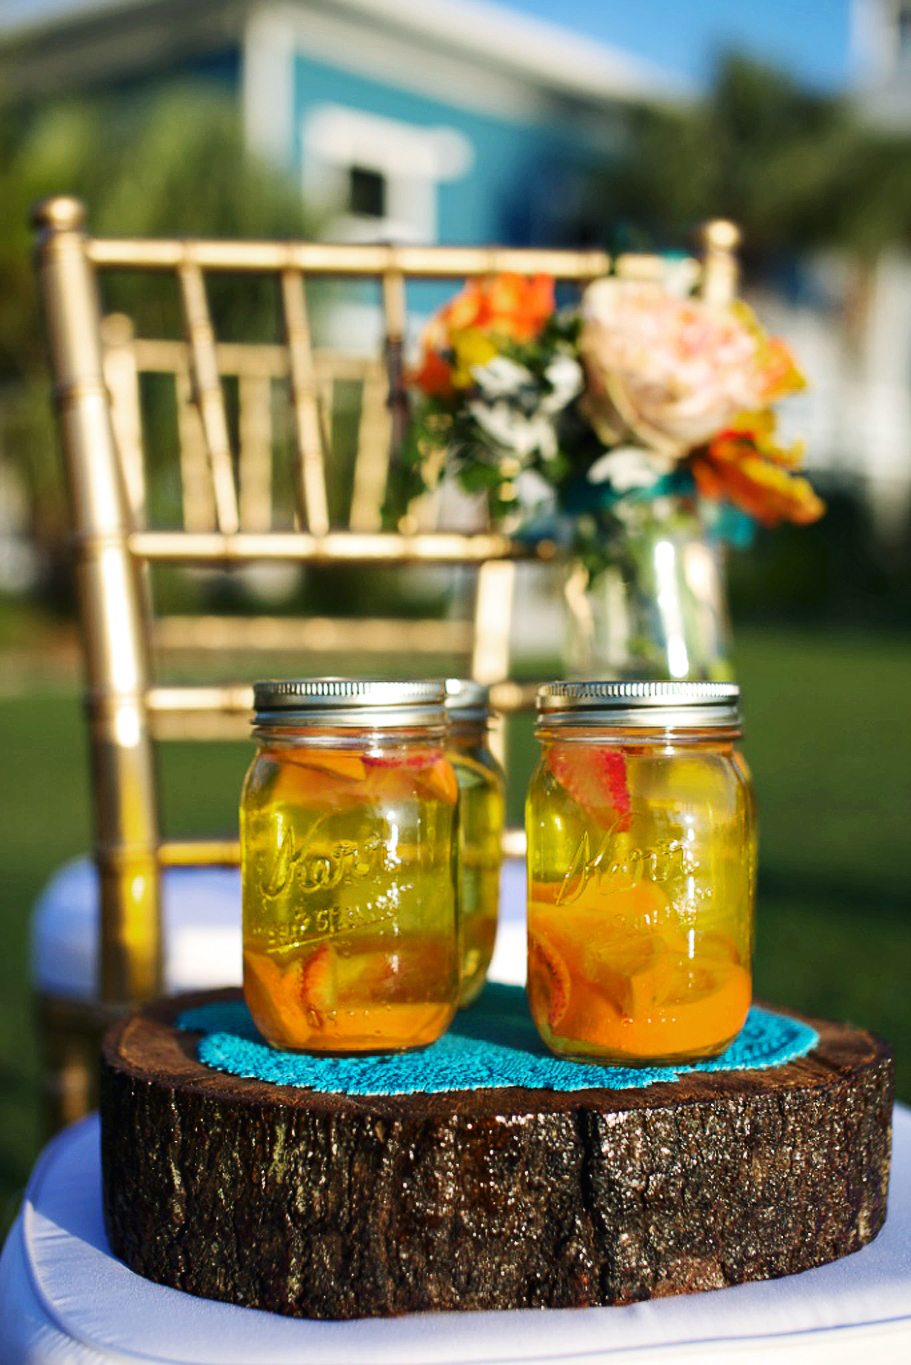 Rustic Citrus Wedding Inspiration Outdoor Spring Ideas Signature Drinks In Mason Jars